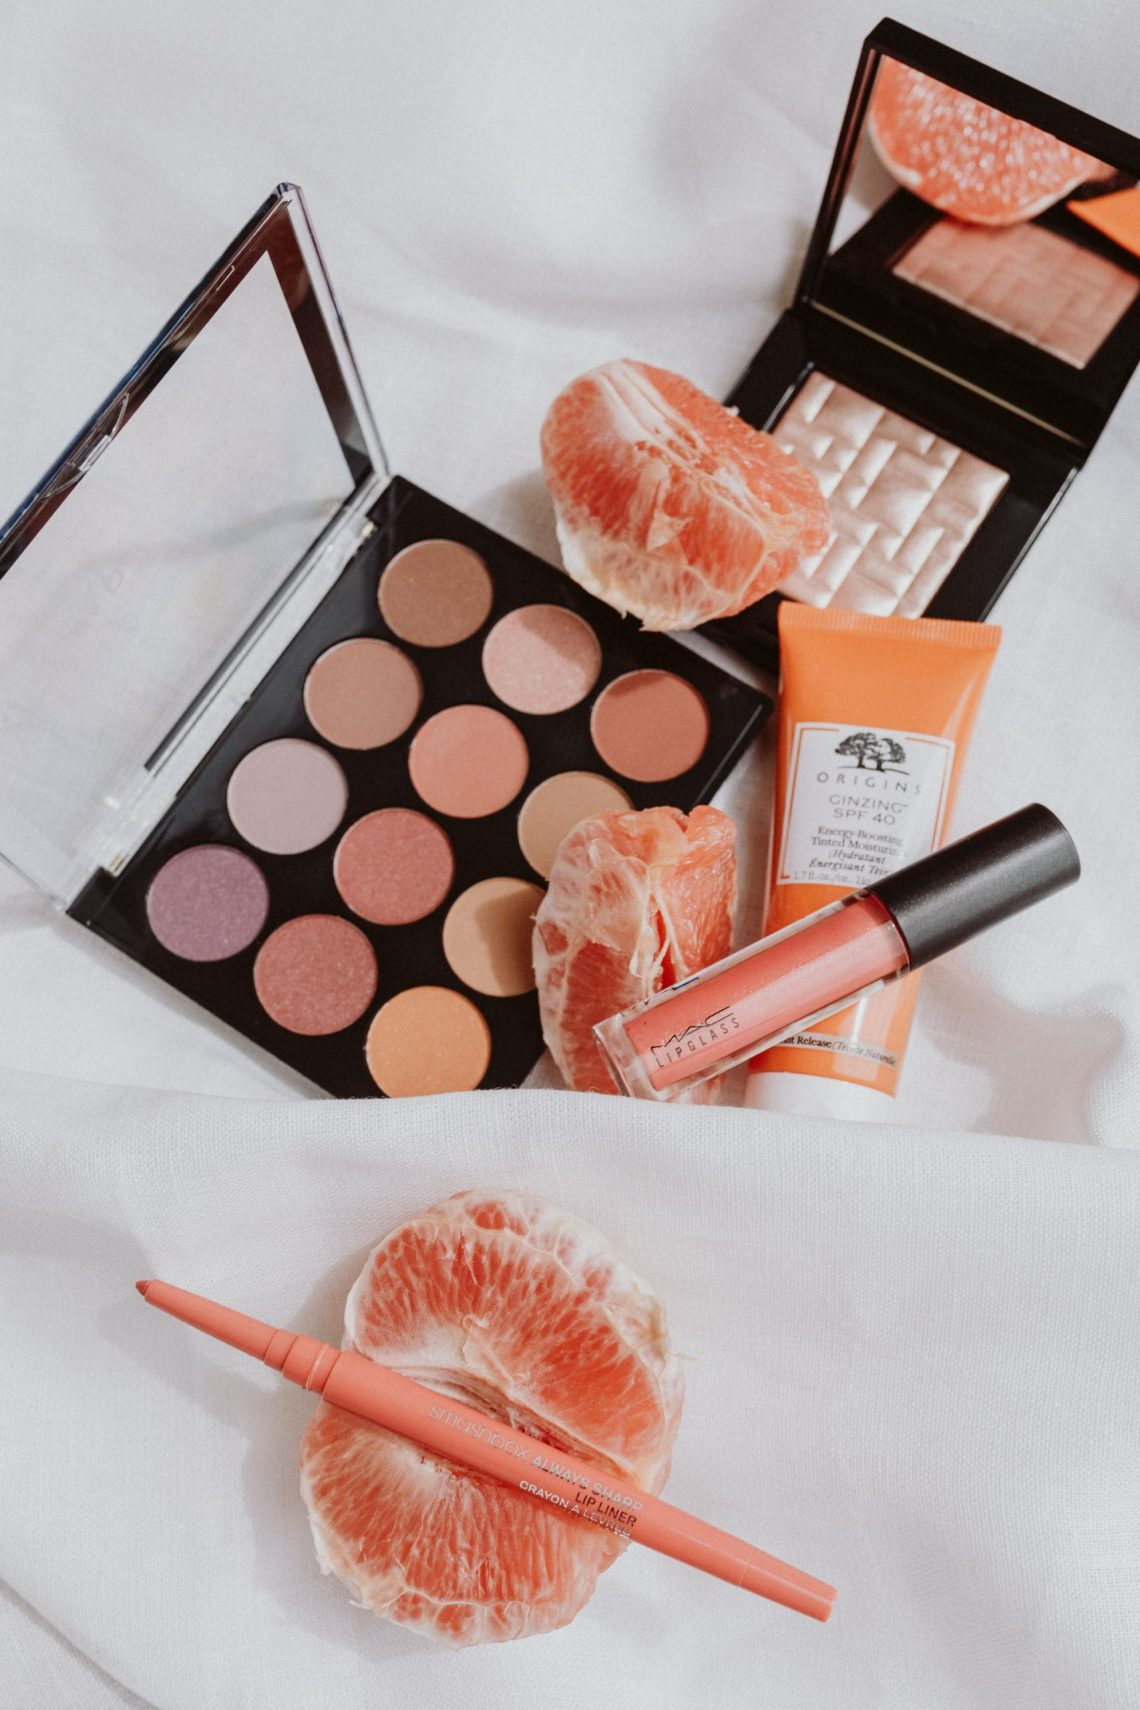 The Grapefruit (Beauty) Palette